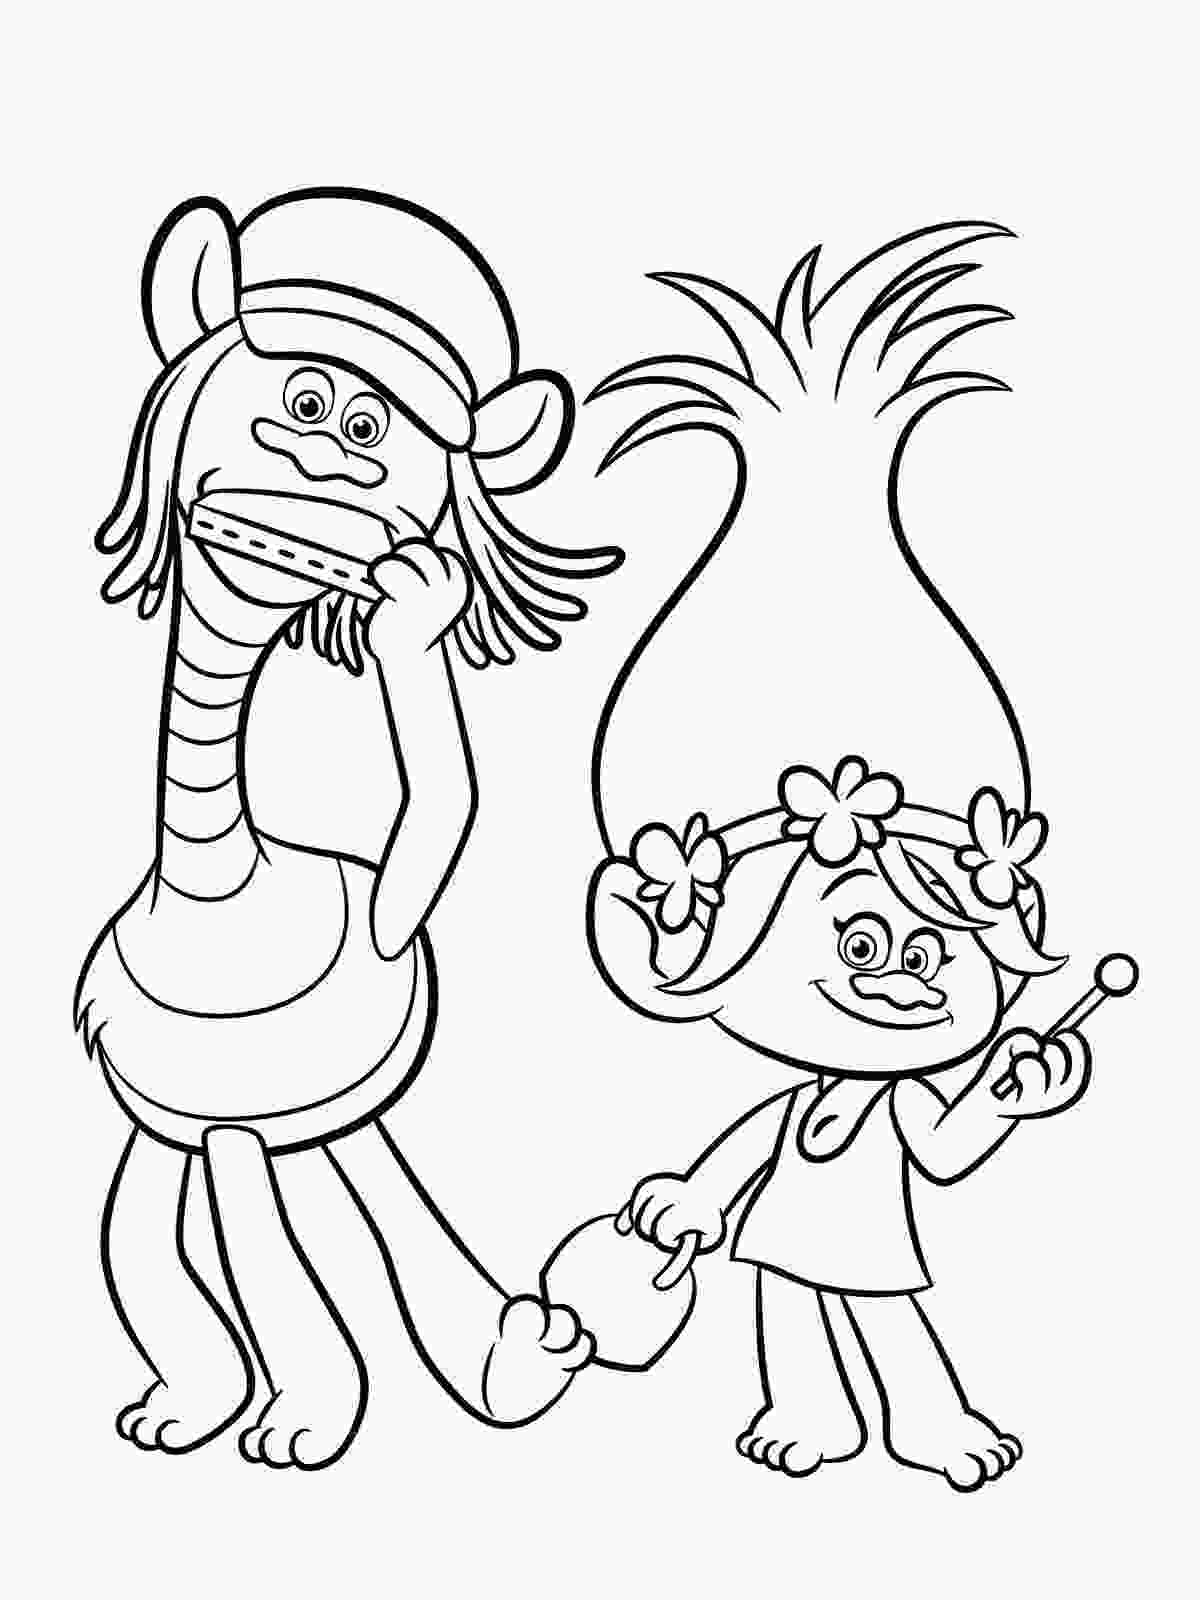 picture coloring disney coloring pages best coloring pages for kids